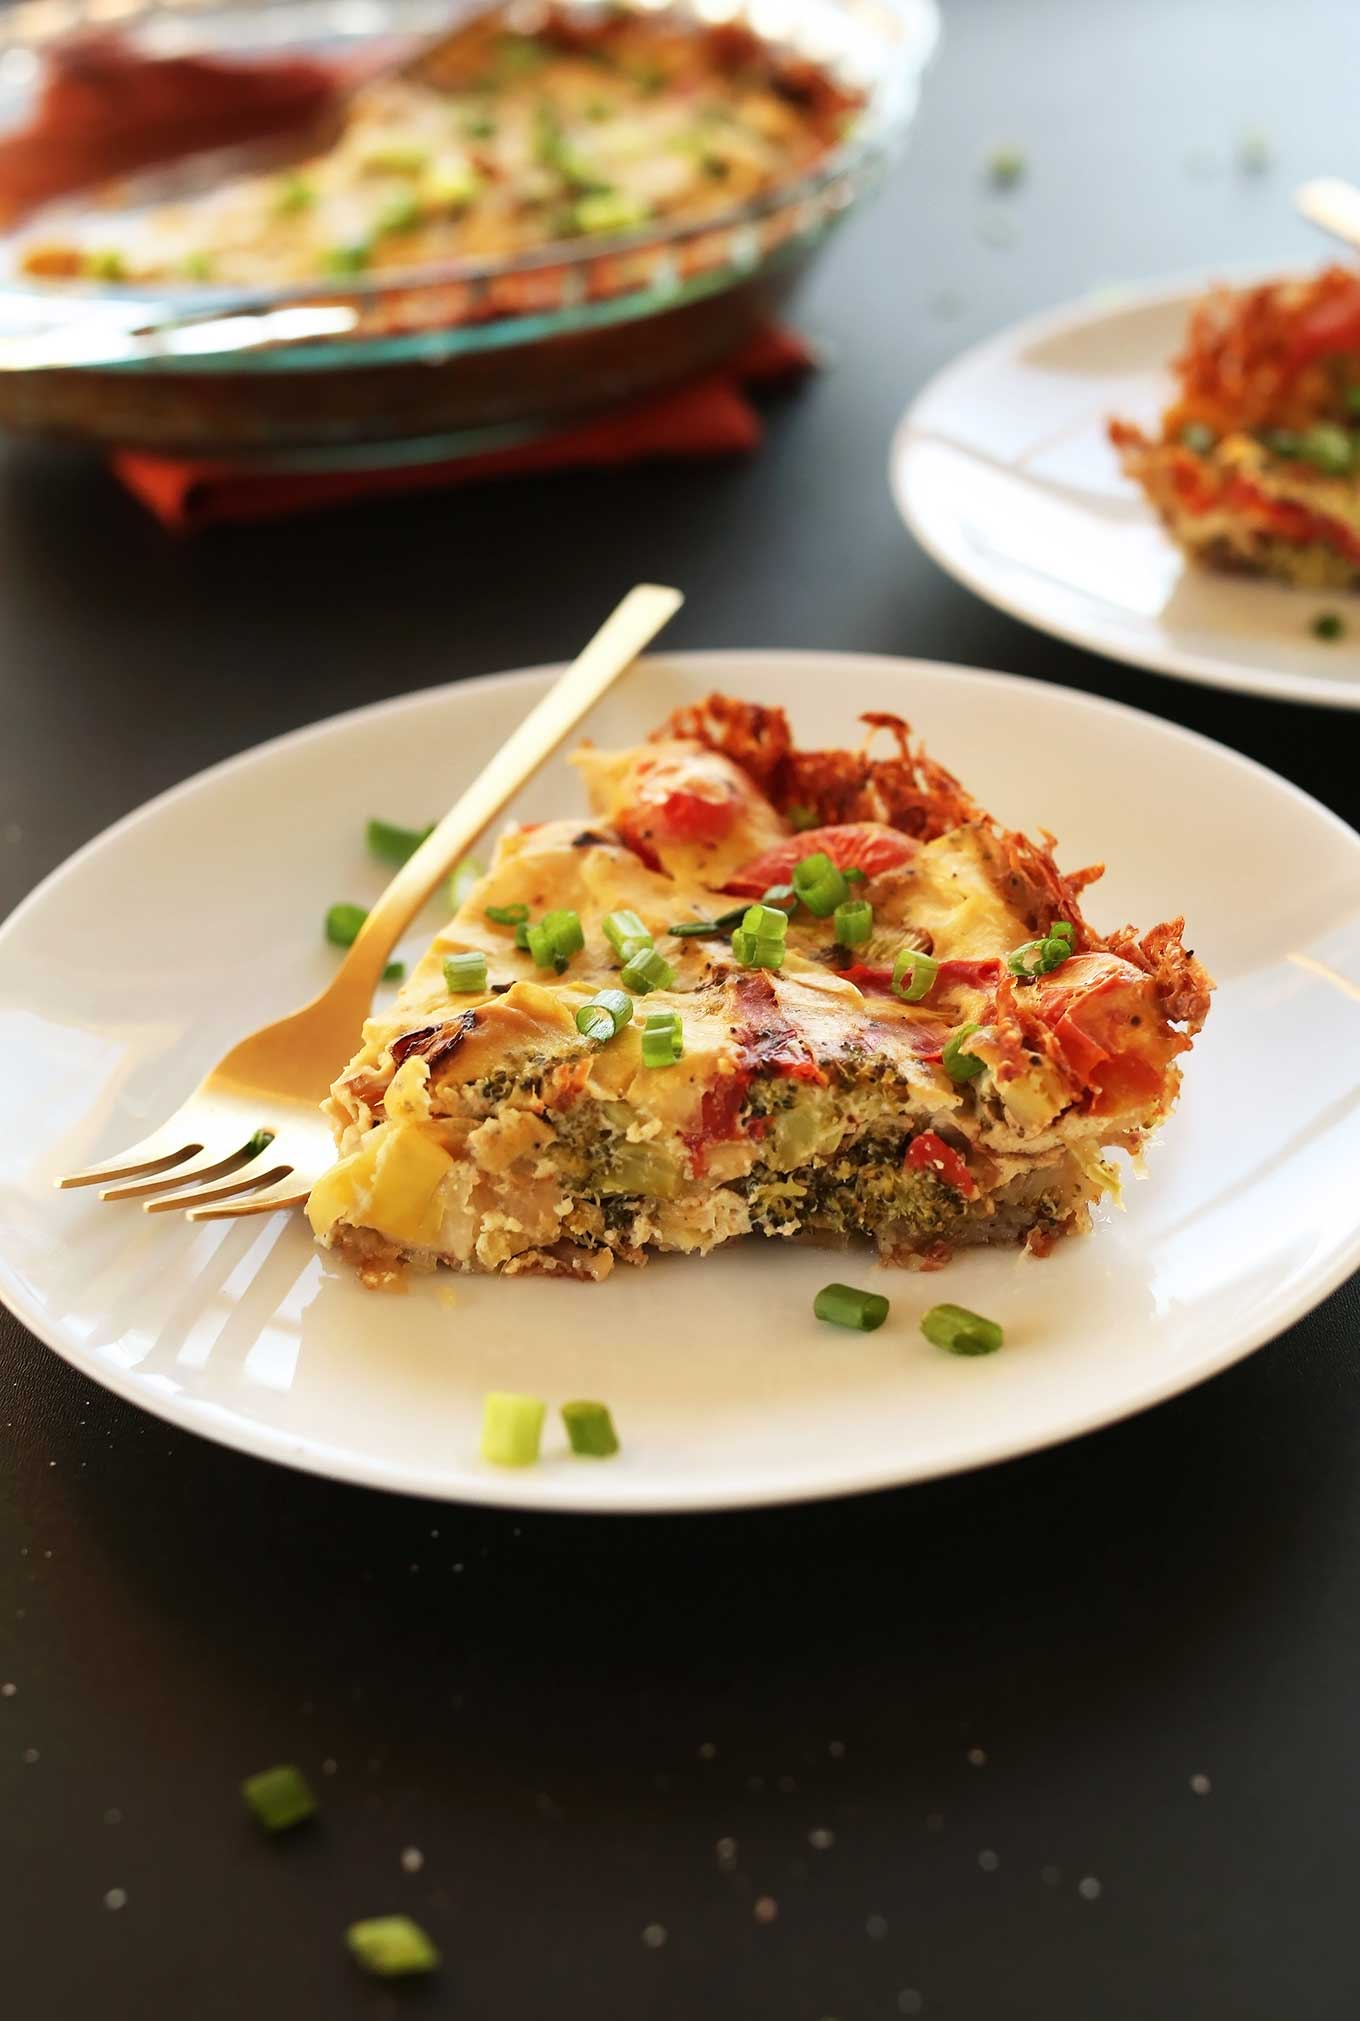 Tofu Quiche and 17 More Protein Packed Vegan Breakfast Ideas that are perfect for busy mornings and on the go. It's easy to eat clean and achieve your weight loss and fitness goals with these delicious recipes for your busy morning. From smoothies, tofu scrambles to overnight oats, you're sure to find something you love. #vegan #protein